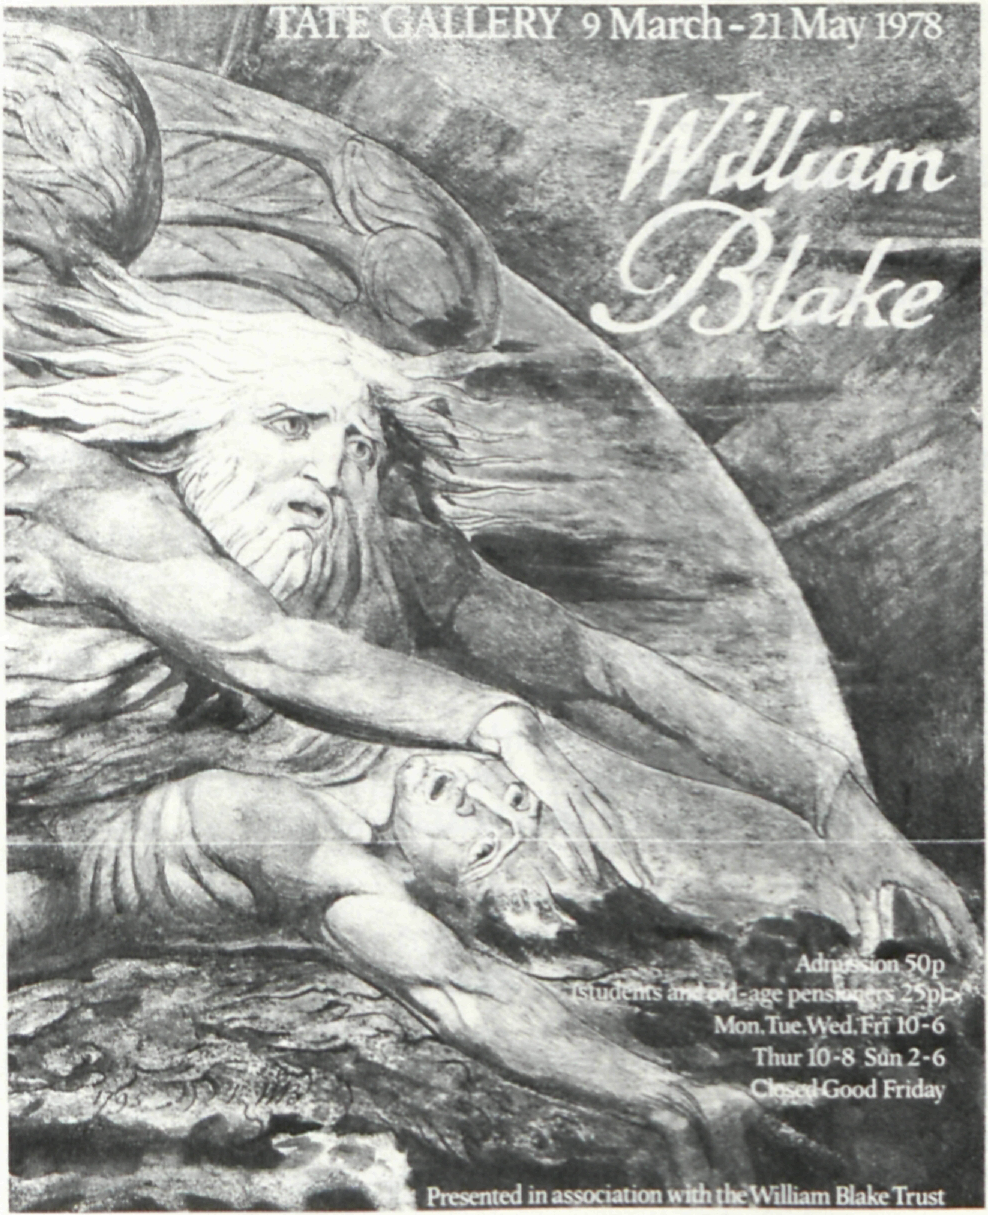 TATE GALLERY 9 March - 21 May 1978                     	William                     	Blake                     	                     	Admission 50p                     	(students and old-age pensioners 25p)                     	Mon. Tue. Wed. Fri 10-6                     	Thur 10-8 Sun 2-6                     	Closed Good Friday                     	                     	1795 WB 						                    	                     	Presented in association with the William Blake Trust